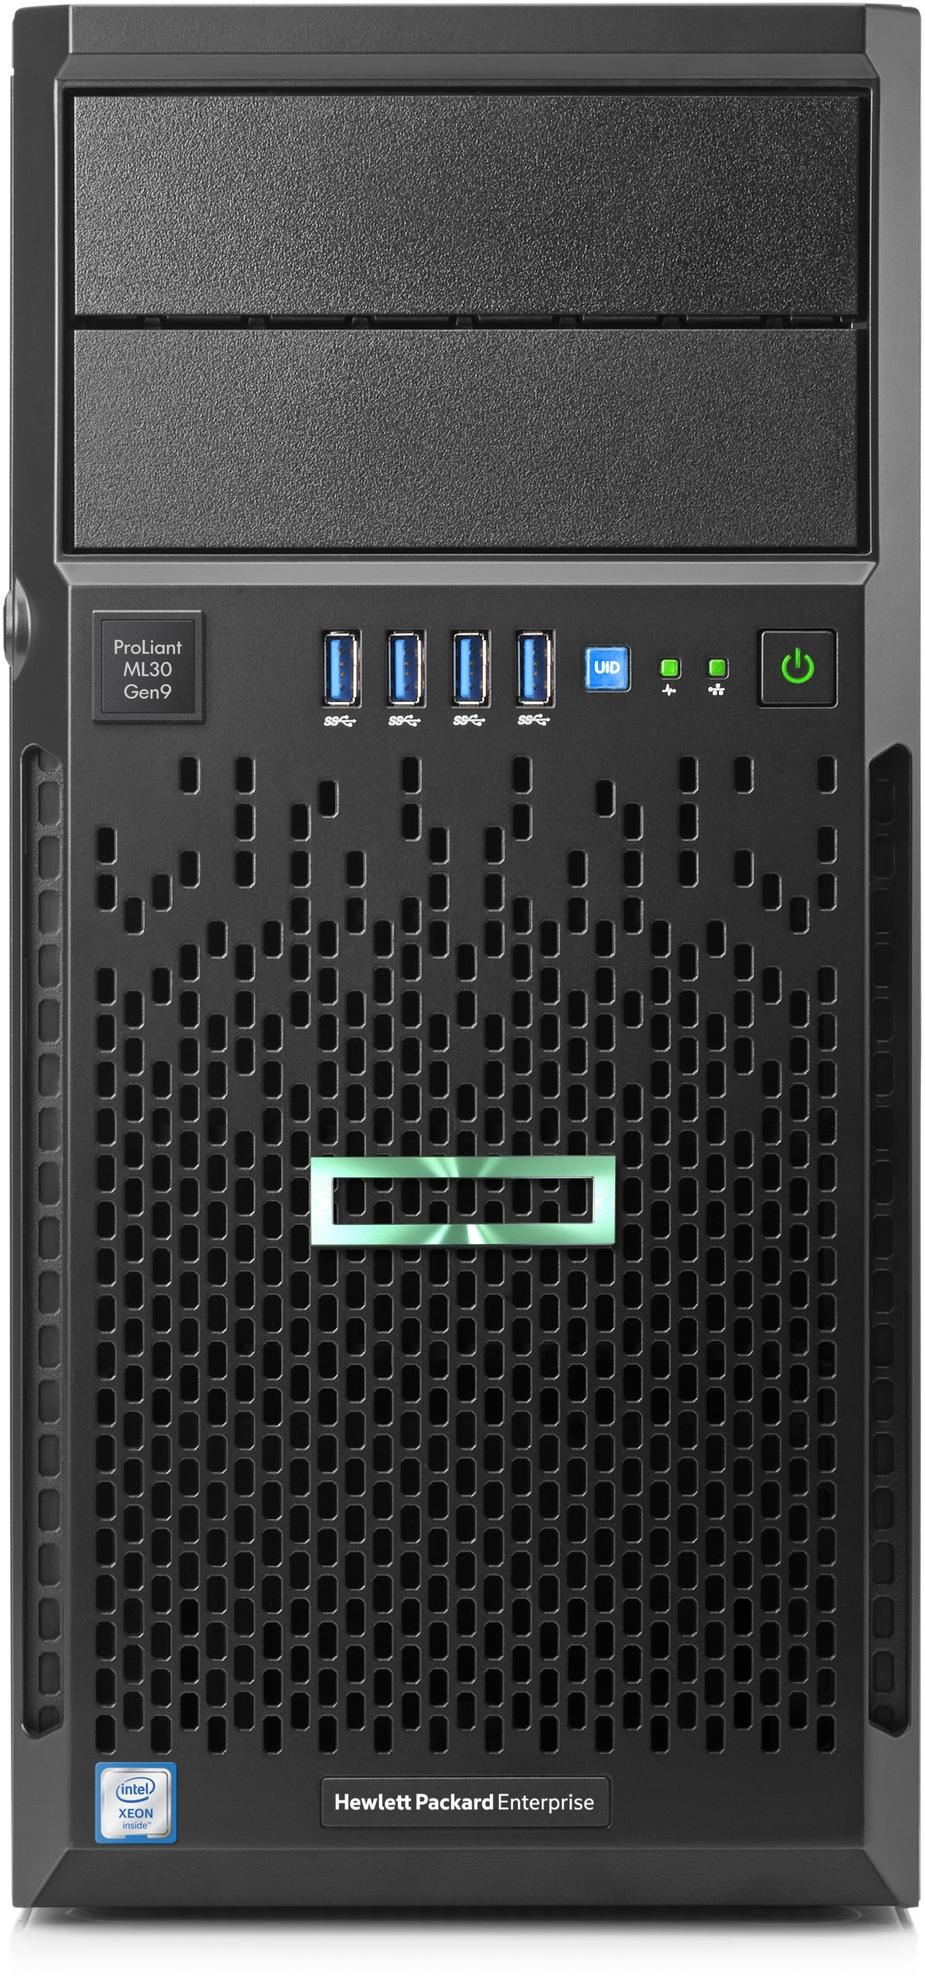 Hewlett Packard Enterprise ProLiant ML30 Gen9 3GHz E3-1220V6 350W Tower (4U) server